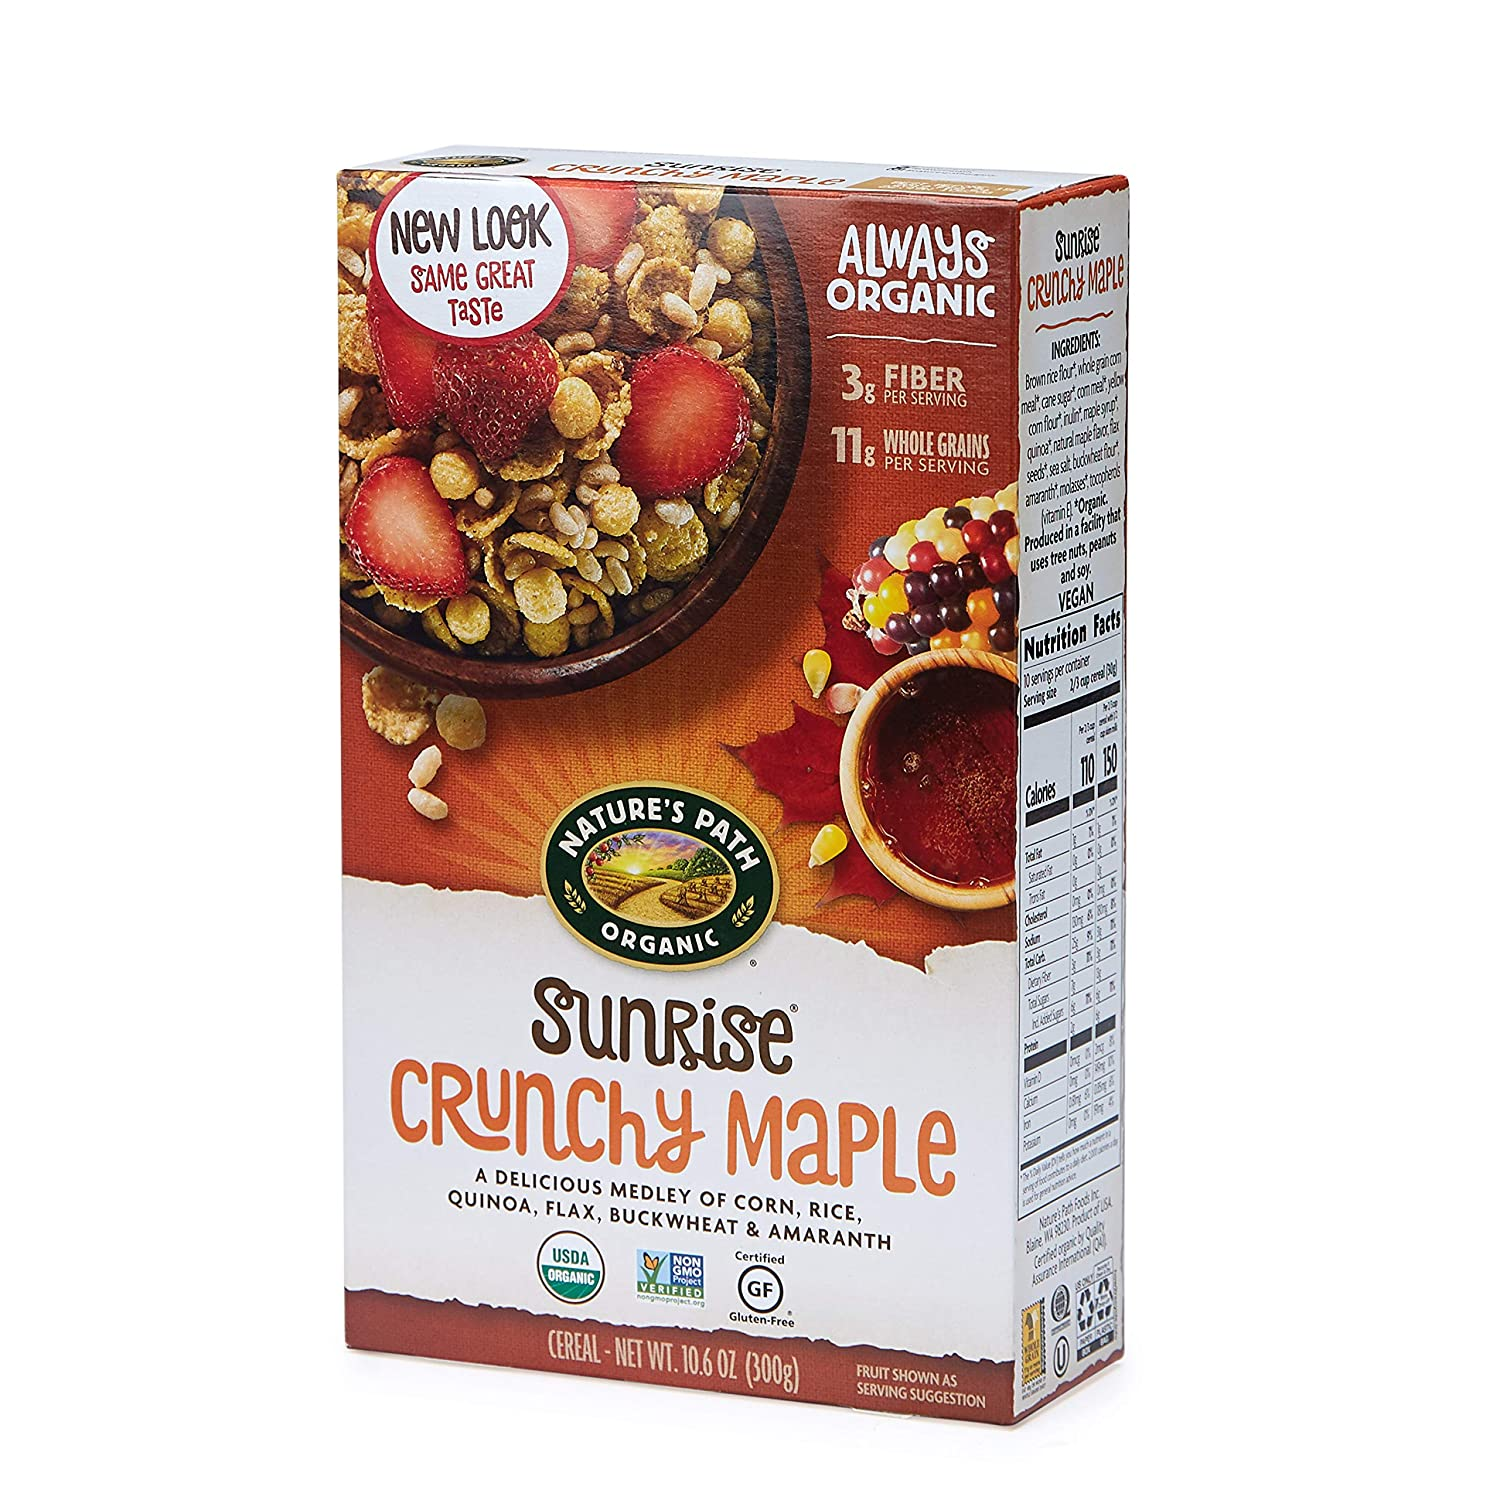 The Nature's Path Sunrise Crunchy Maple Cereal travel product recommended by Sophia Rose Webster on Pretty Progressive.